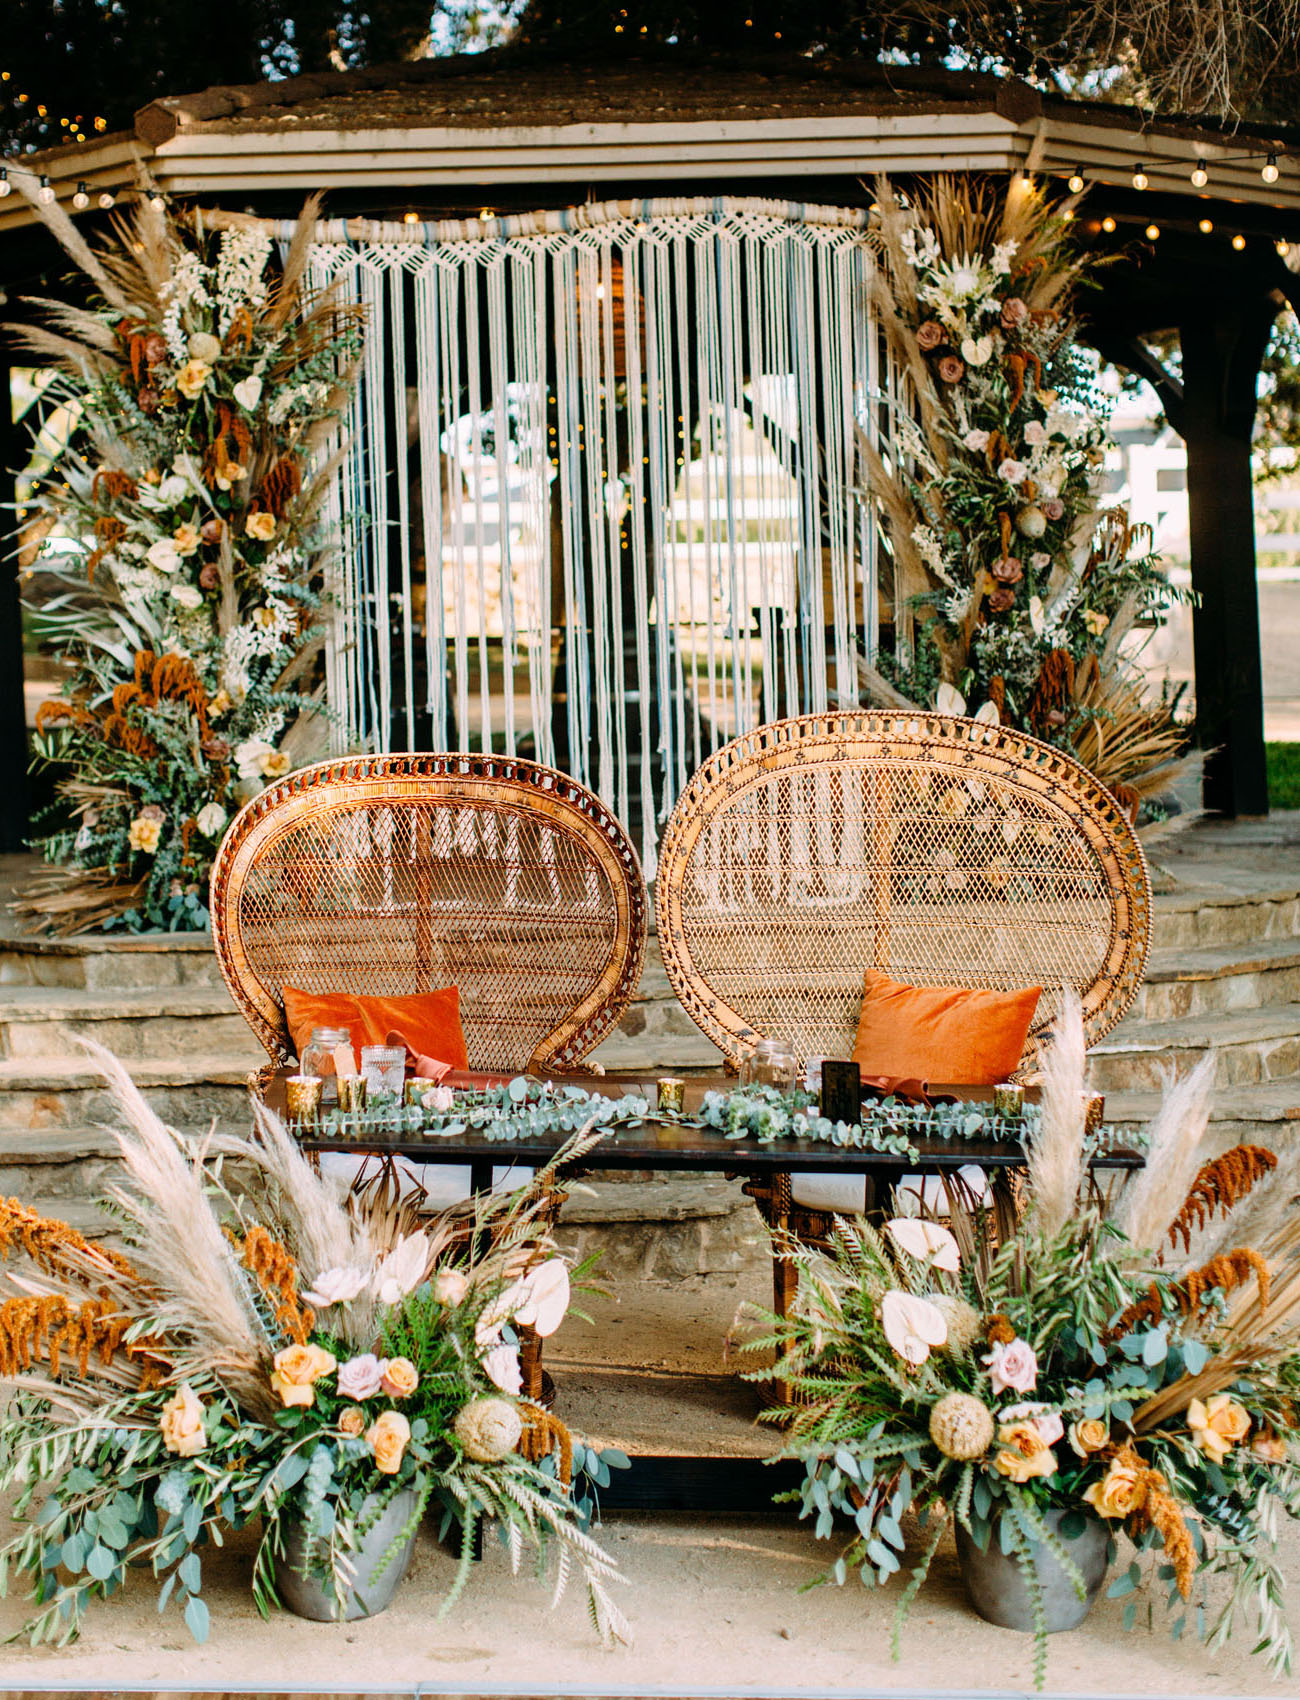 macrame peacock chair backdrop